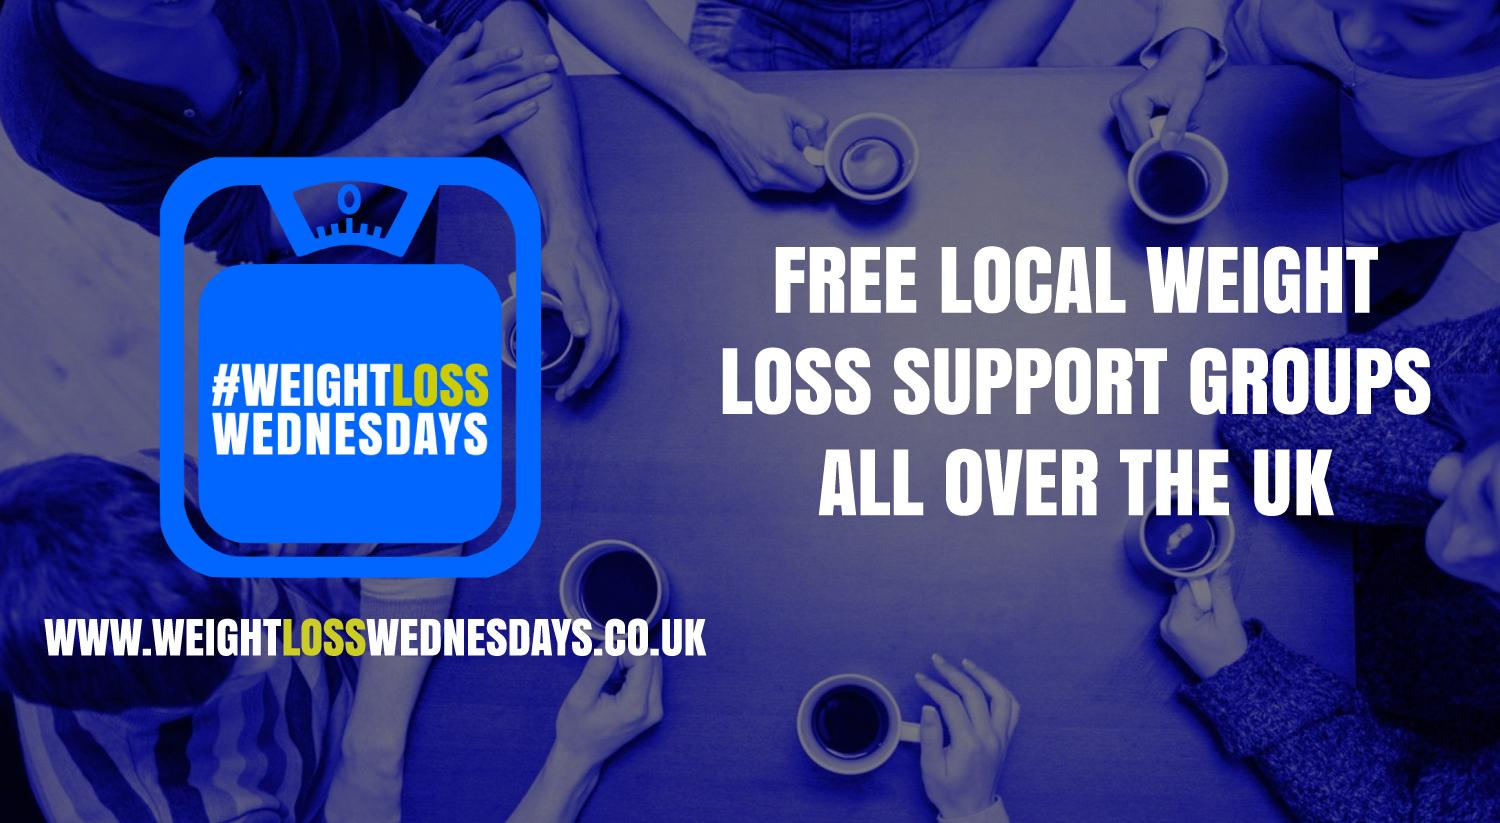 WEIGHT LOSS WEDNESDAYS! Free weekly support group in Doncaster